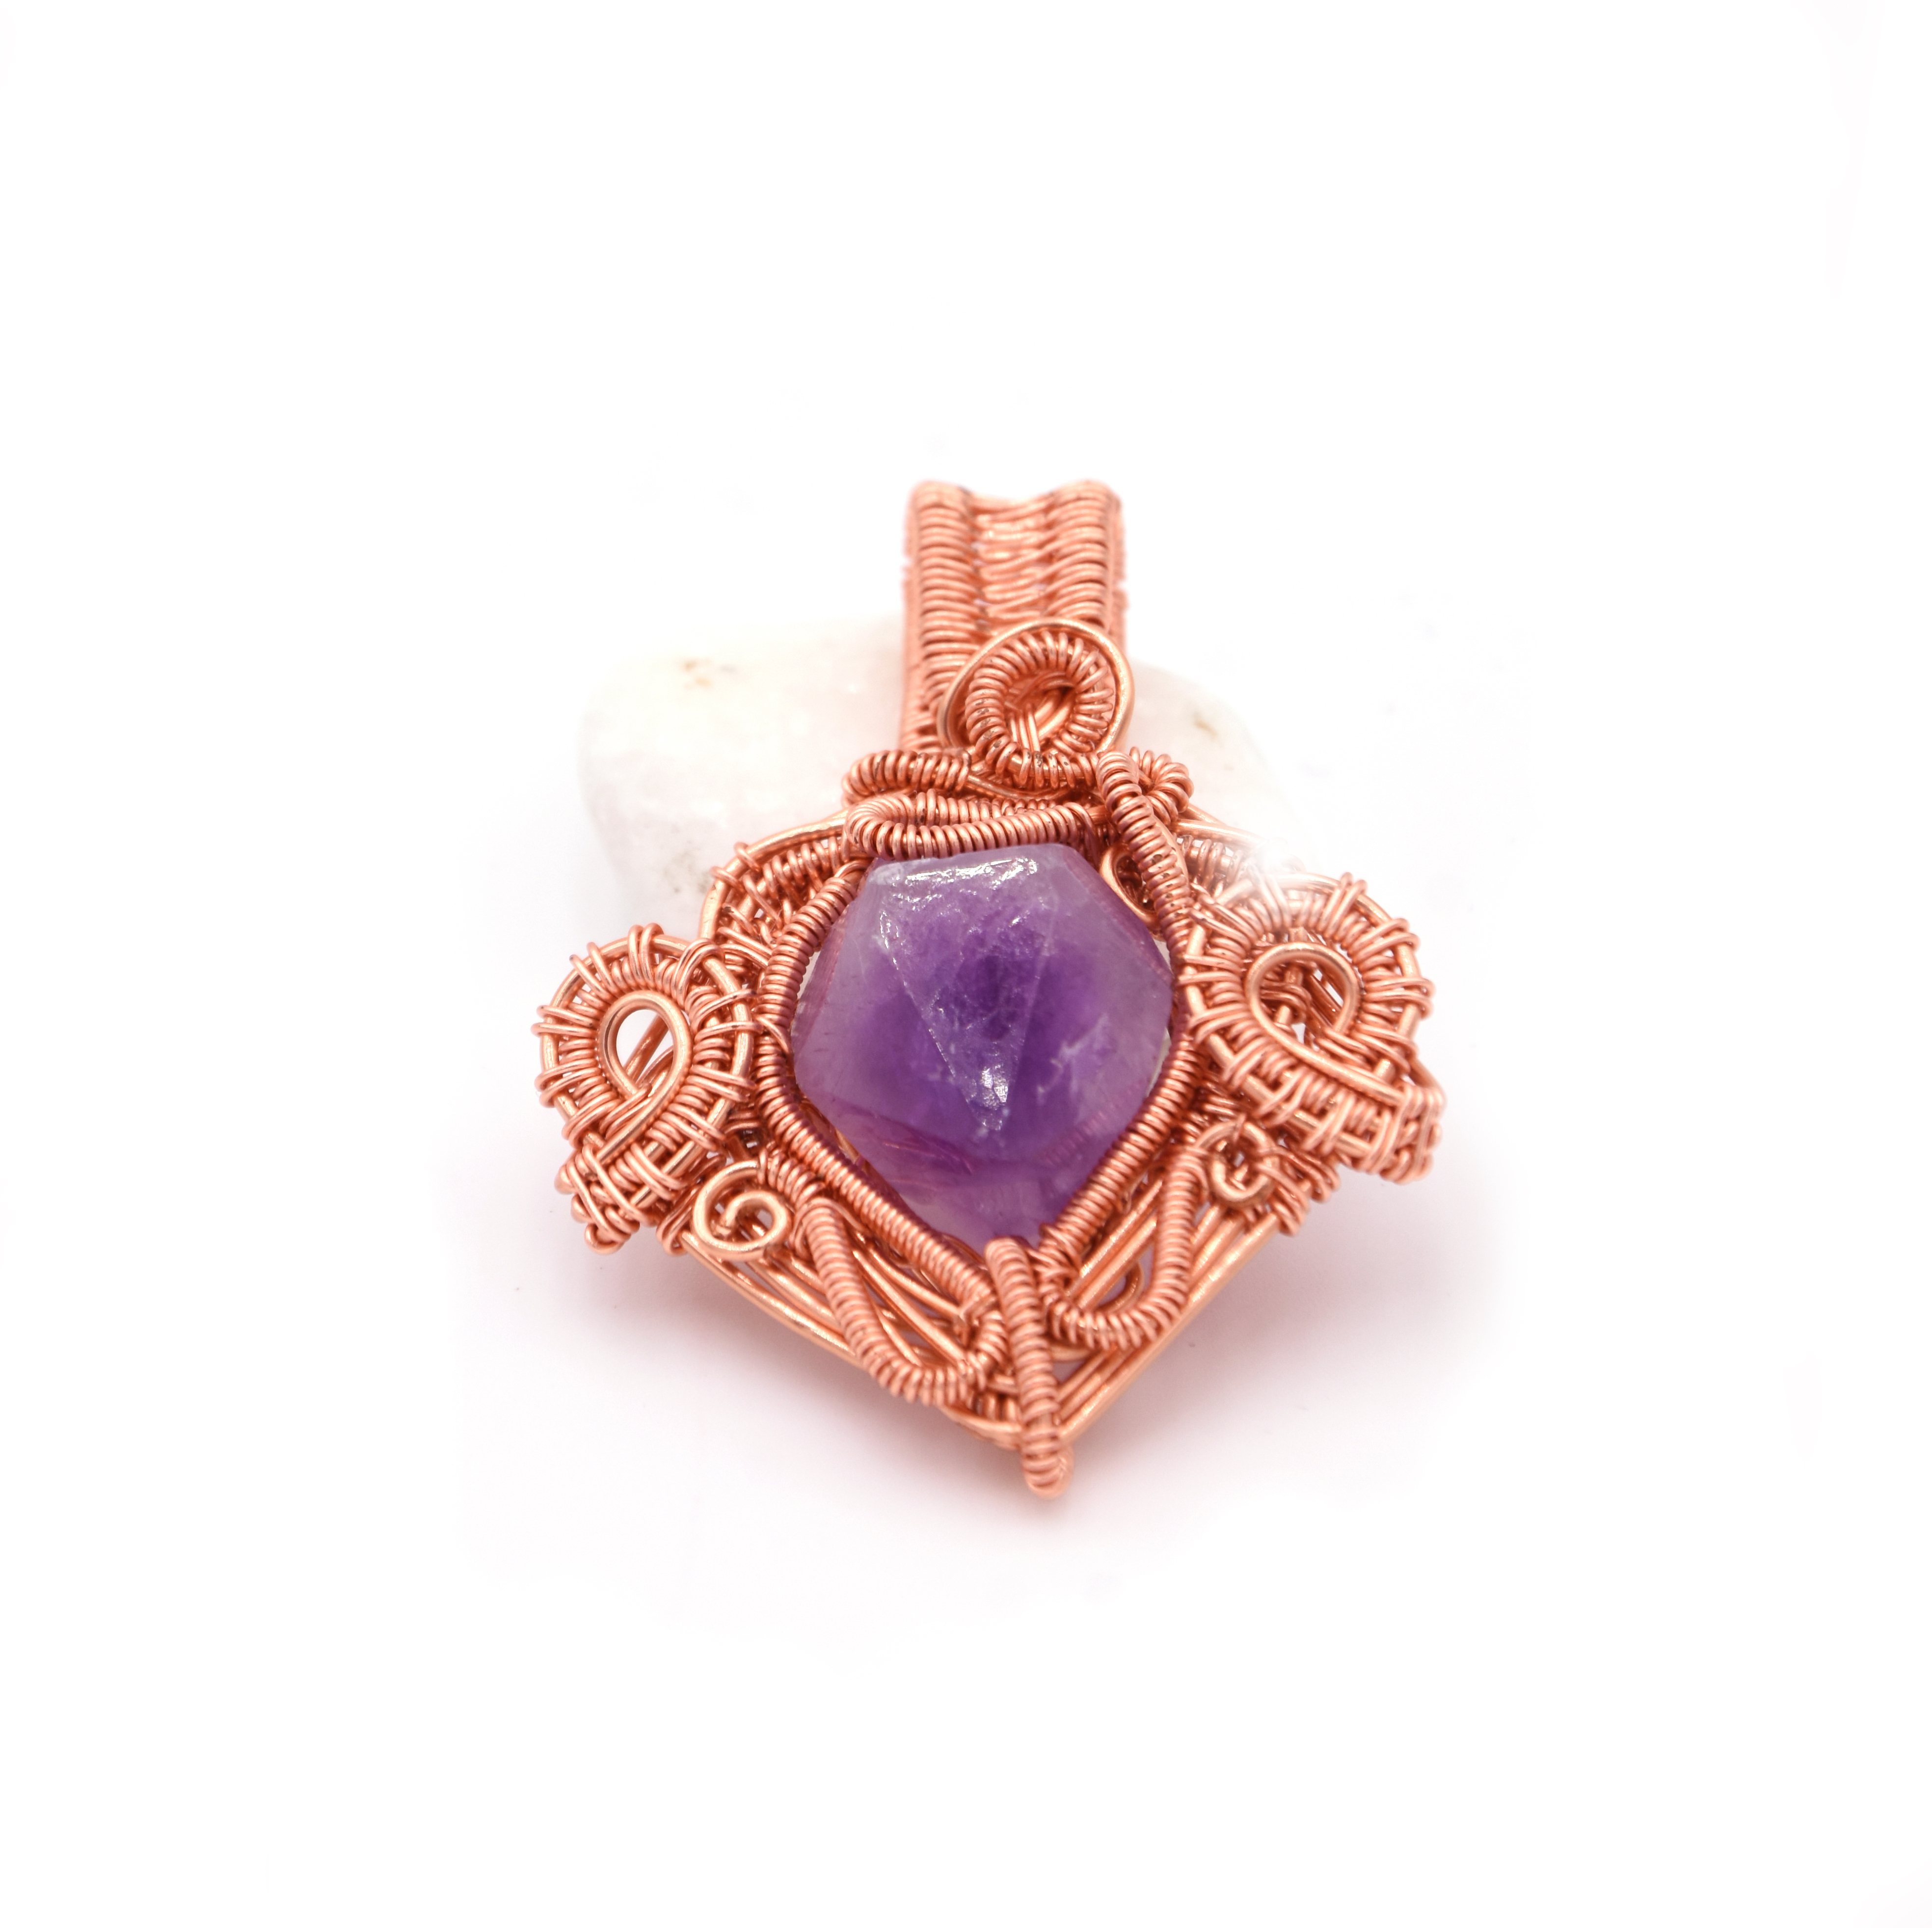 Gabriella Szekely Jewellery - amethyst shard wrapped in copper wire - wire wrapped pendant